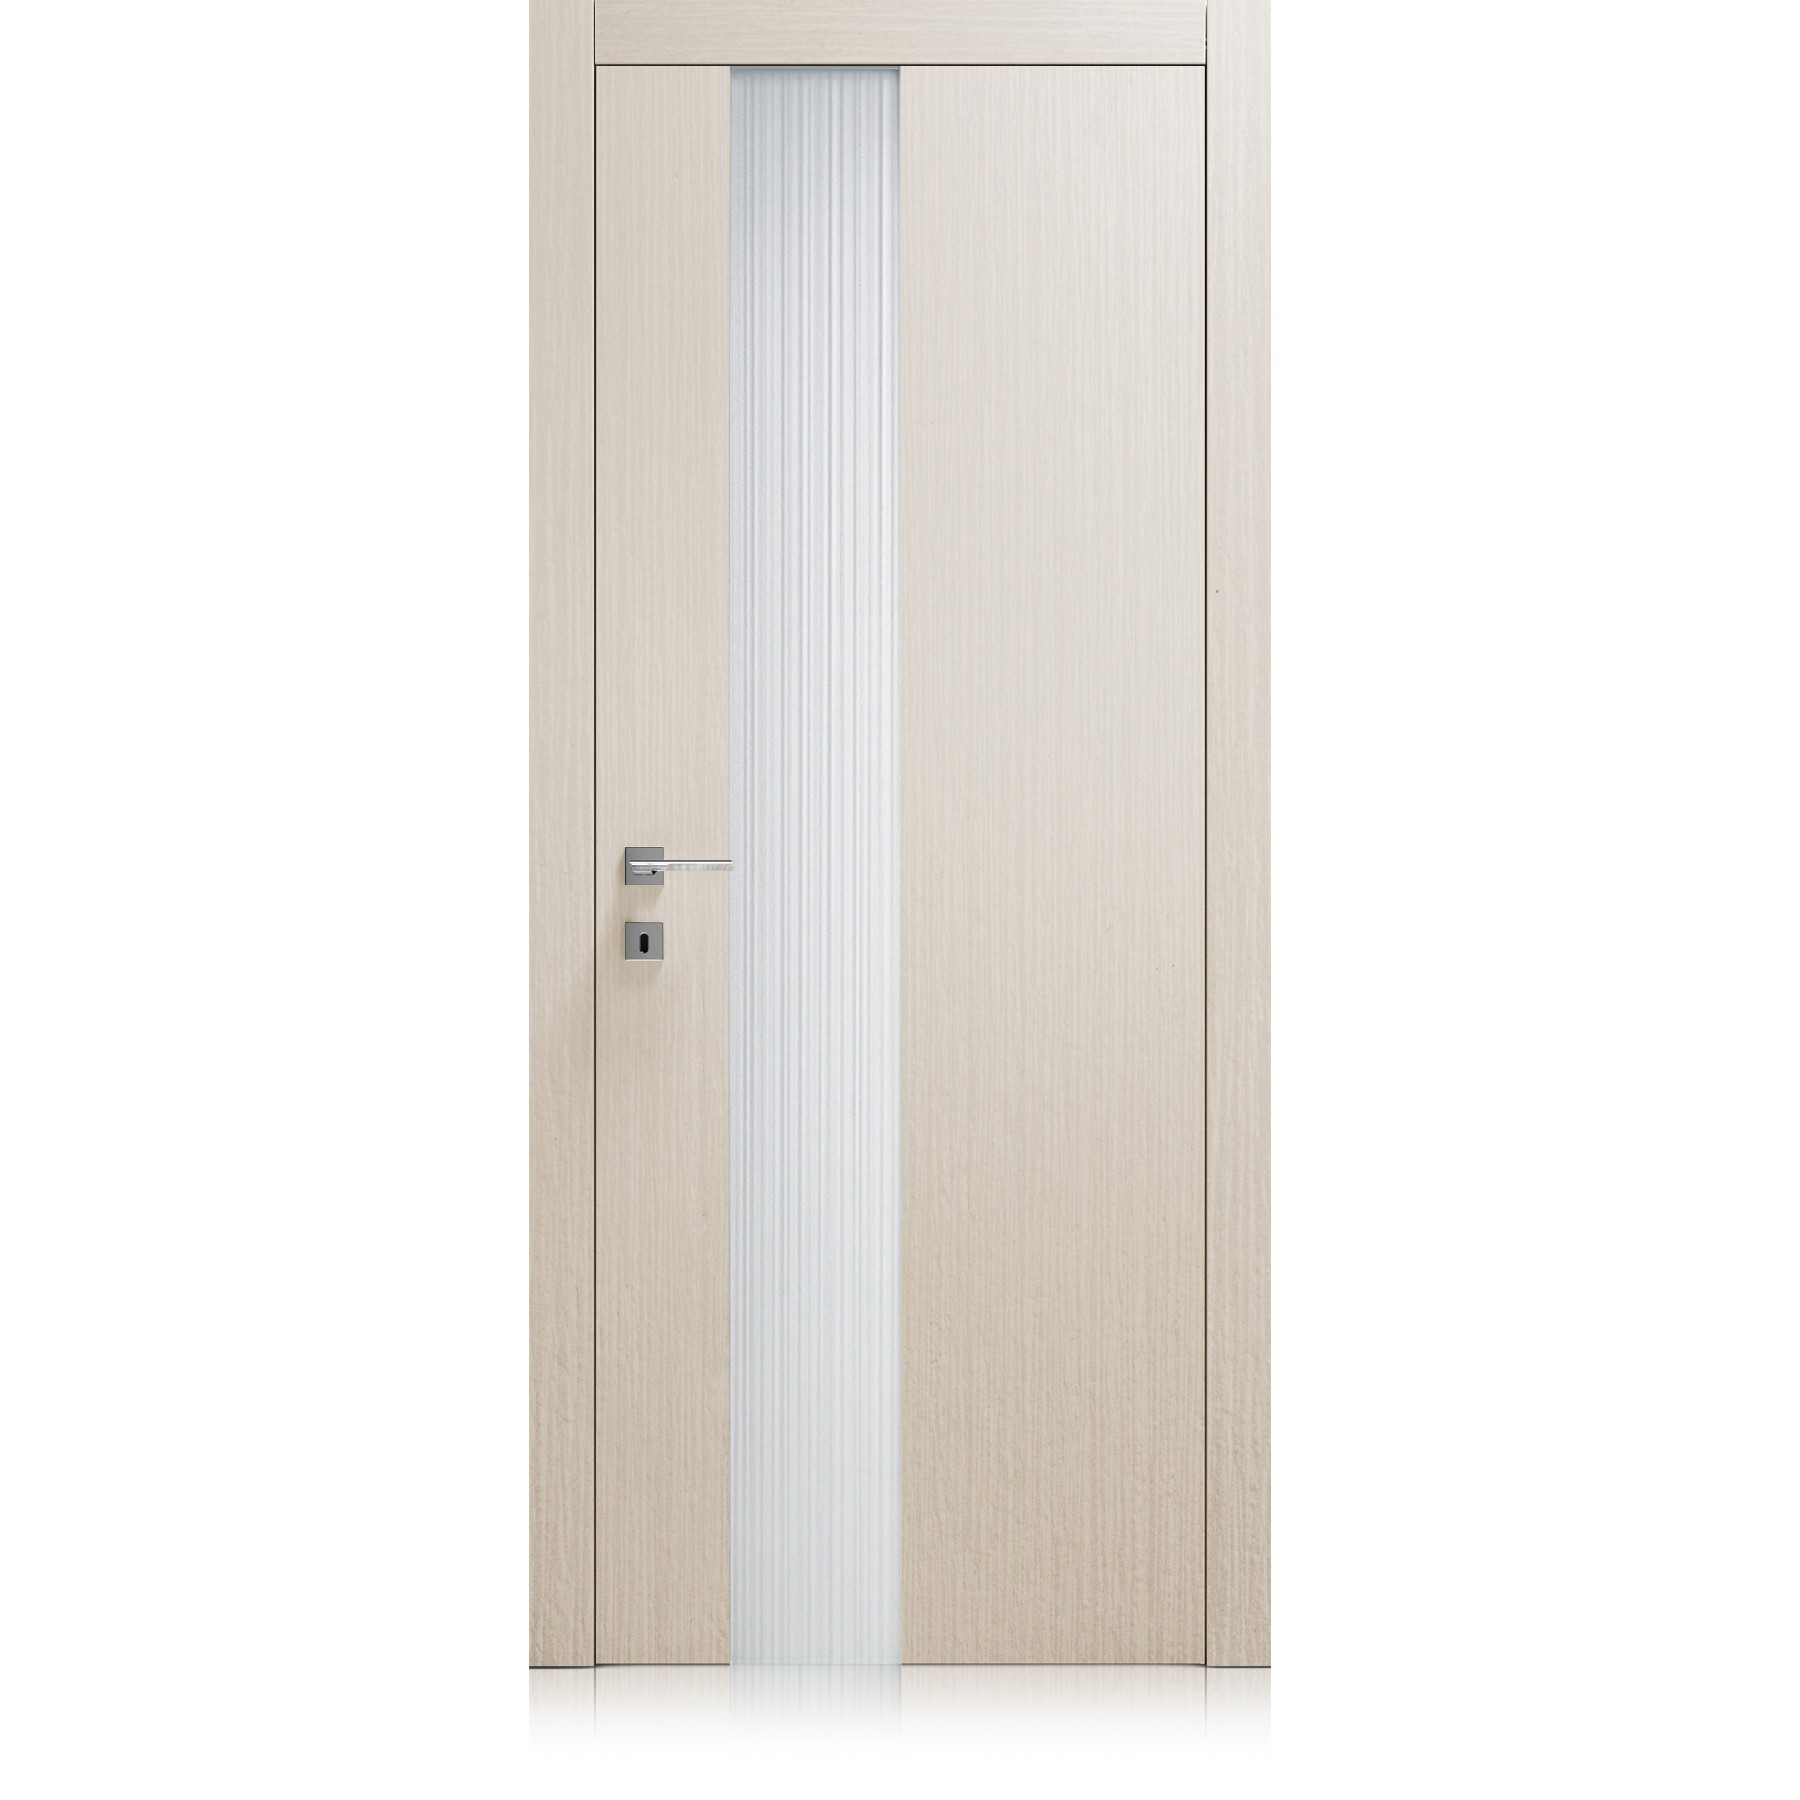 Liss Vetro Point frosted extraclear glass door